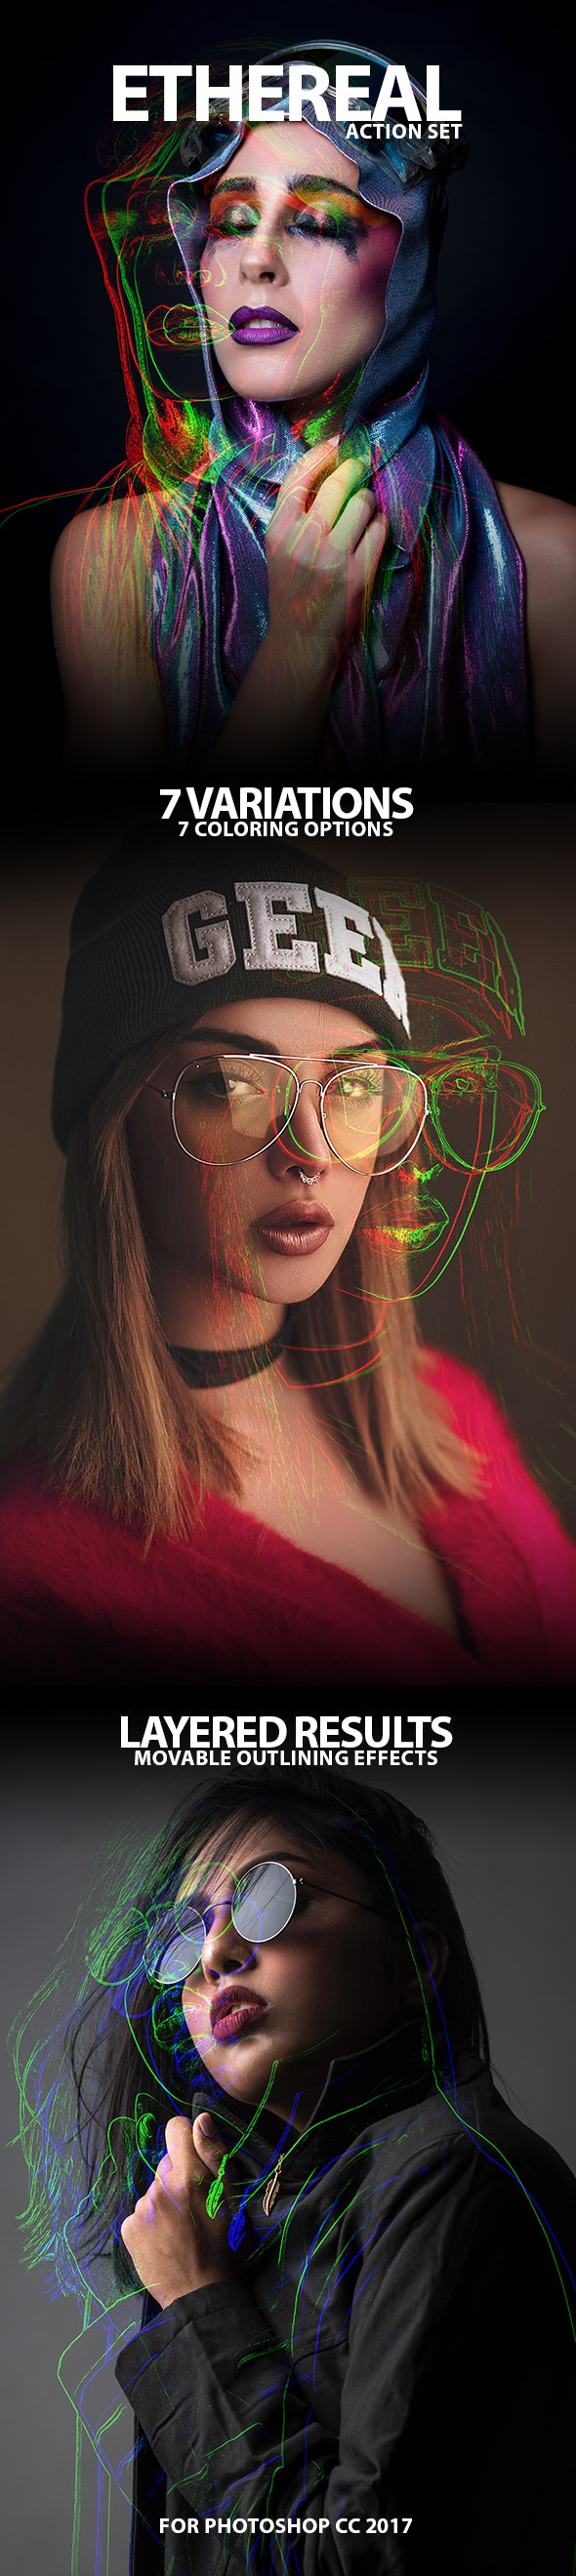 Ethereal Colorful Ghostly Outlines Photo Action Effect - Photo Effects Actions